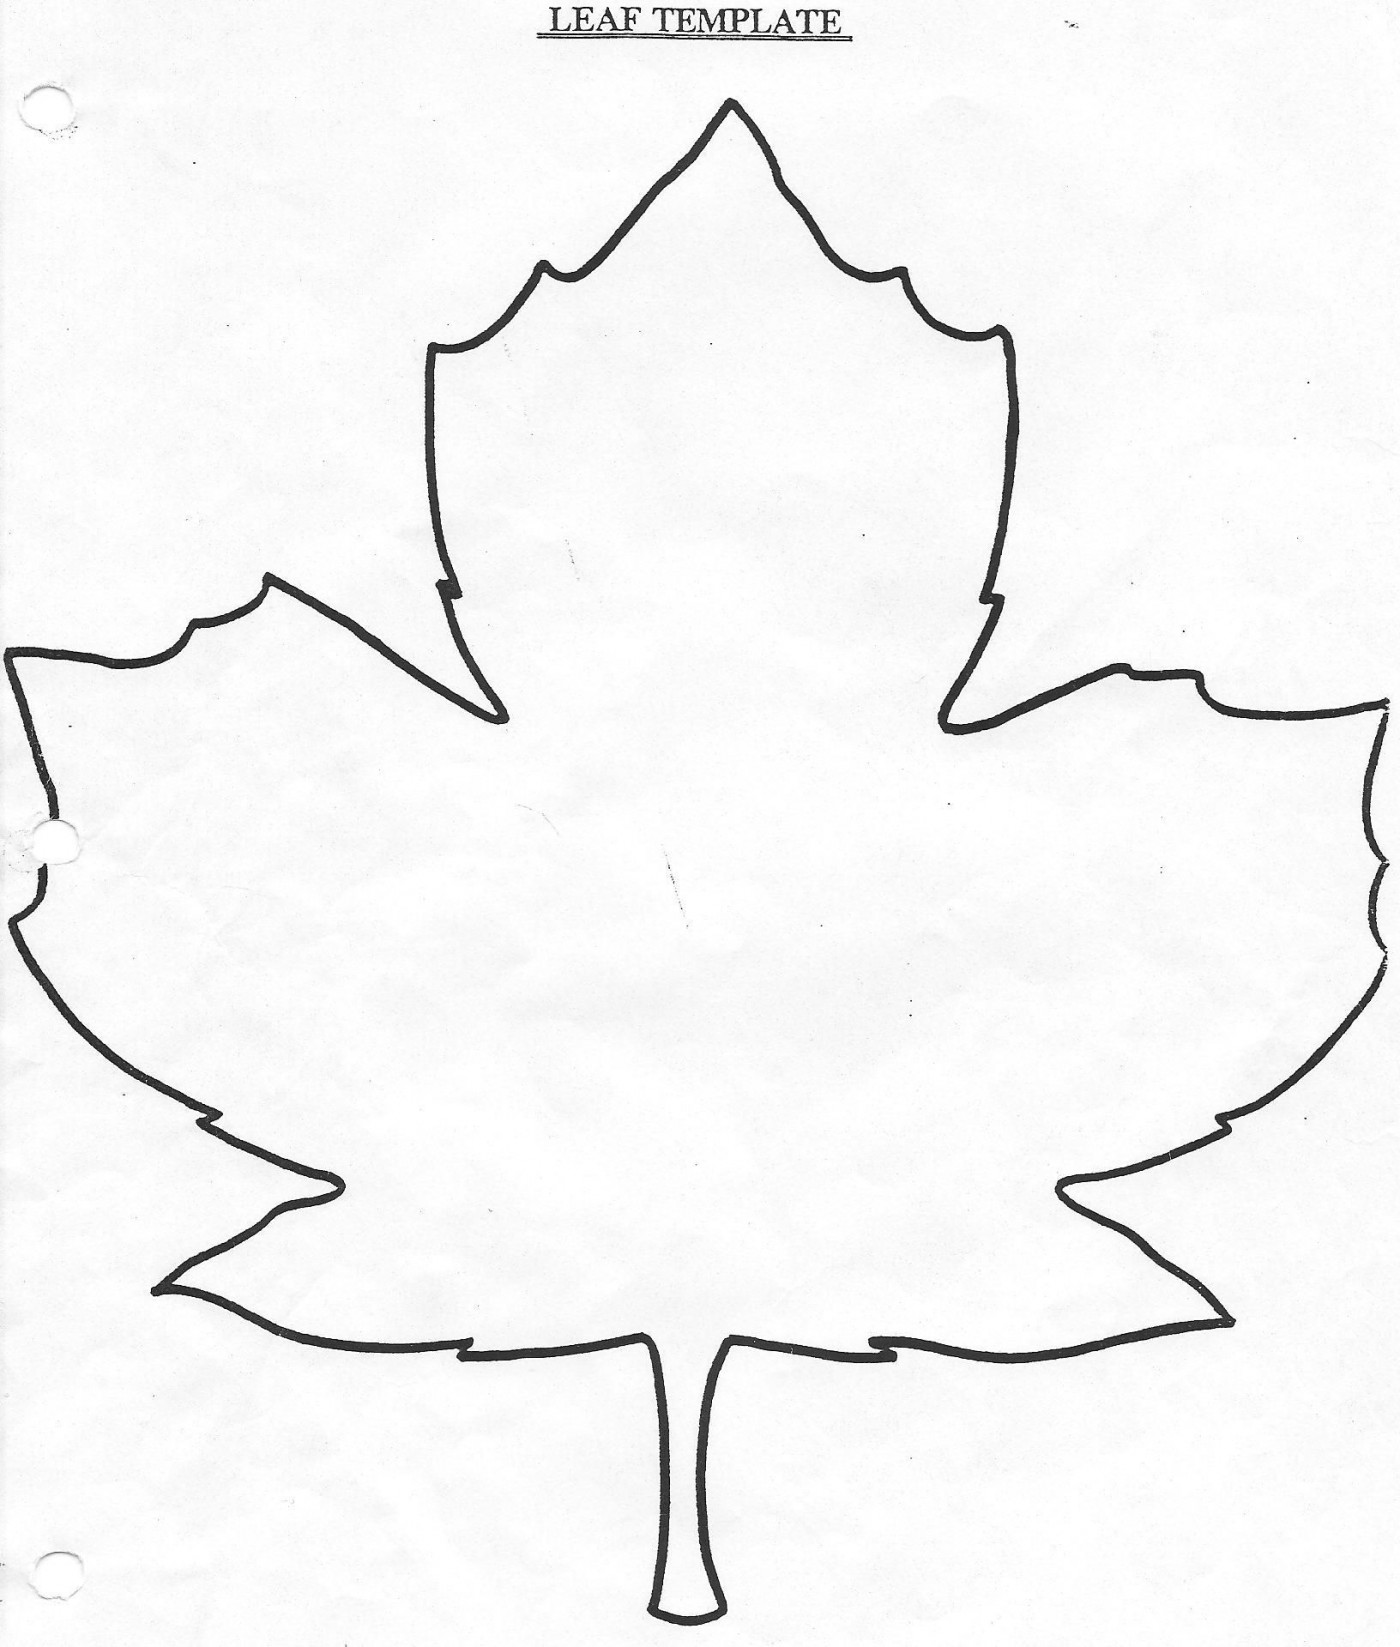 008 Archaicawful Blank Leaf Template With Line Photo  Printable1400